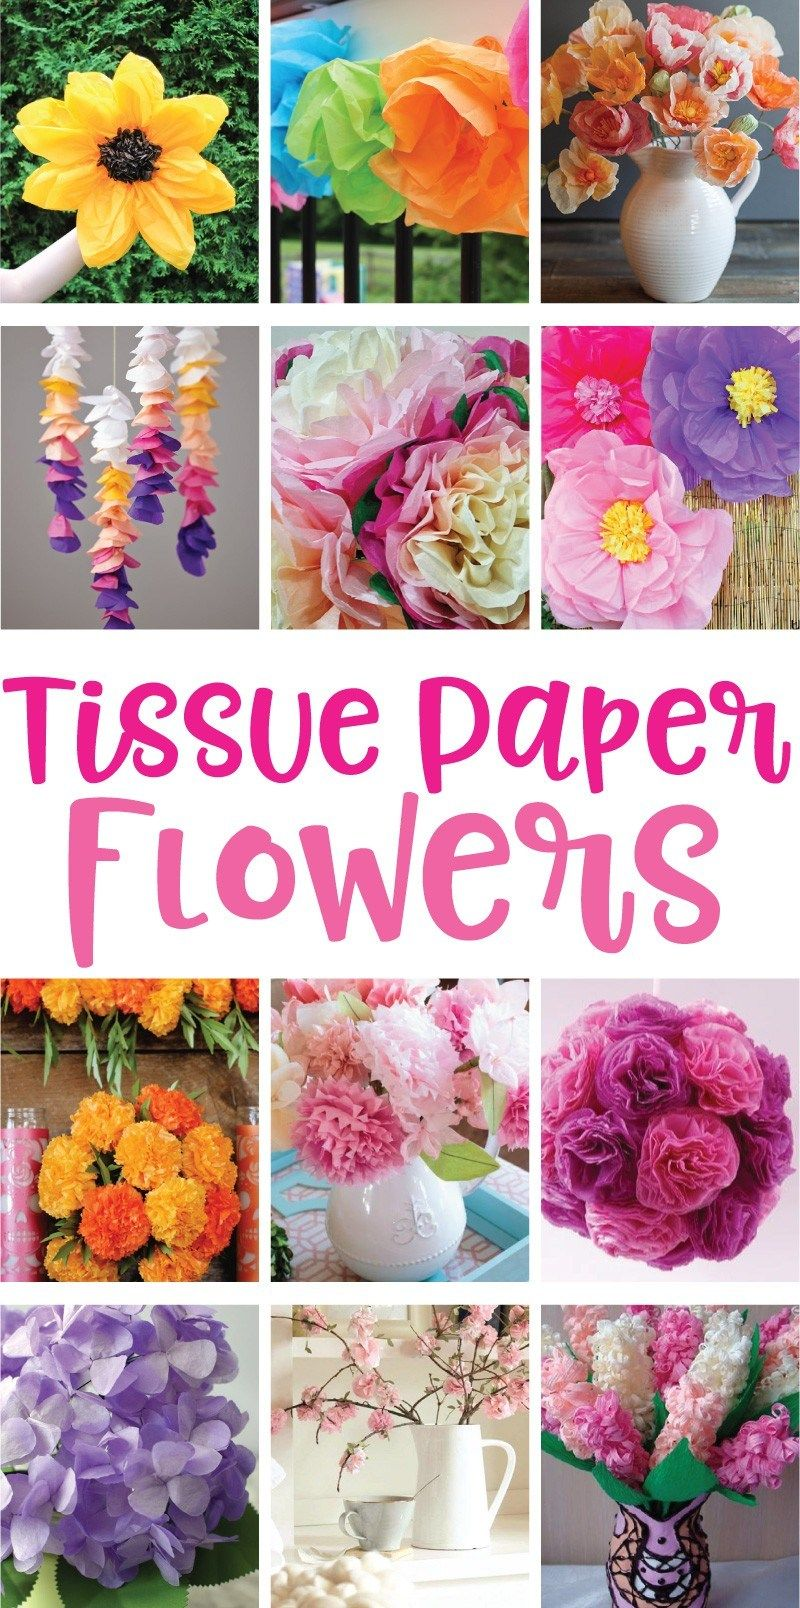 12 Tissue Paper Flowers That Are Easy To Make On Pinterest